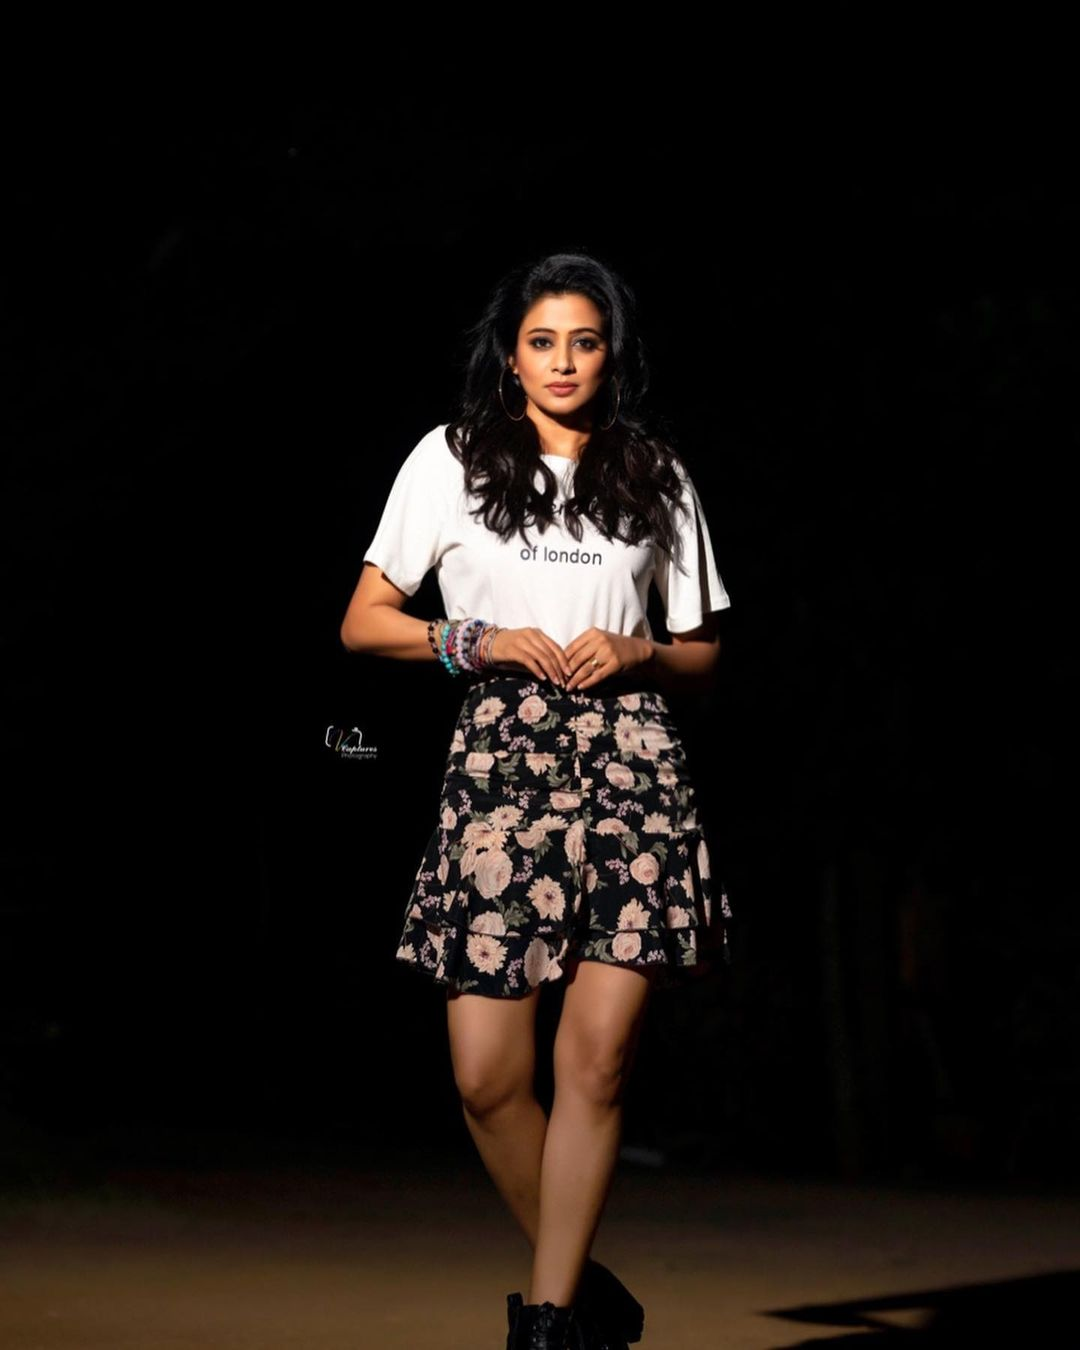 Beautiful actress Priyamani wearing floral mini and white T shirt. Outfit: Made for her. 2021-09-30